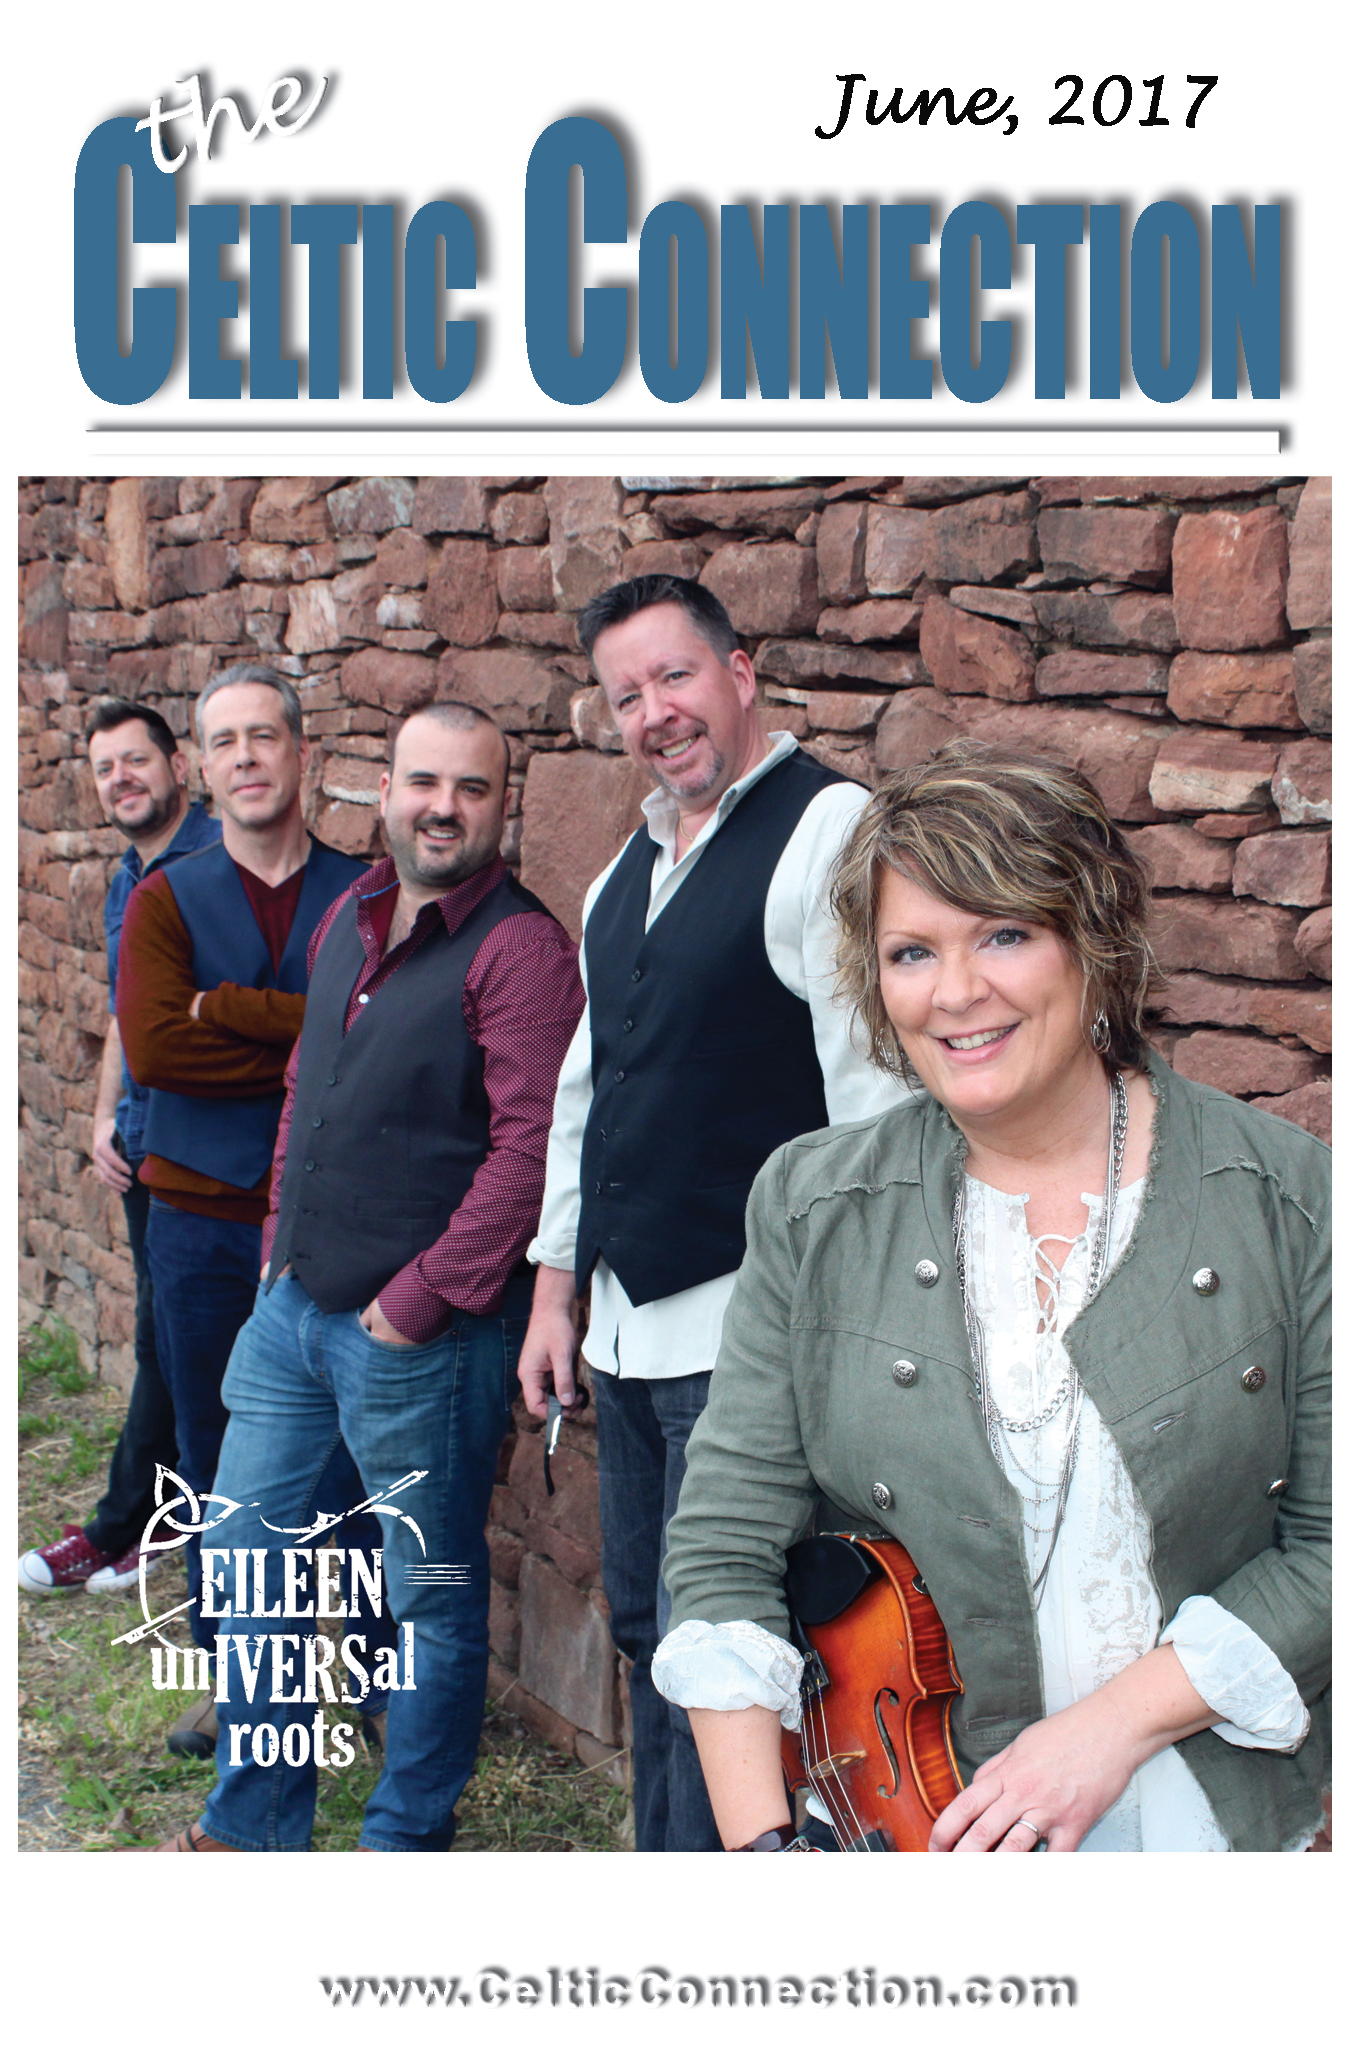 "Eileen Ivers returns to Colorado ""Universal Roots"" project July 13 at Soiled dove Underground"